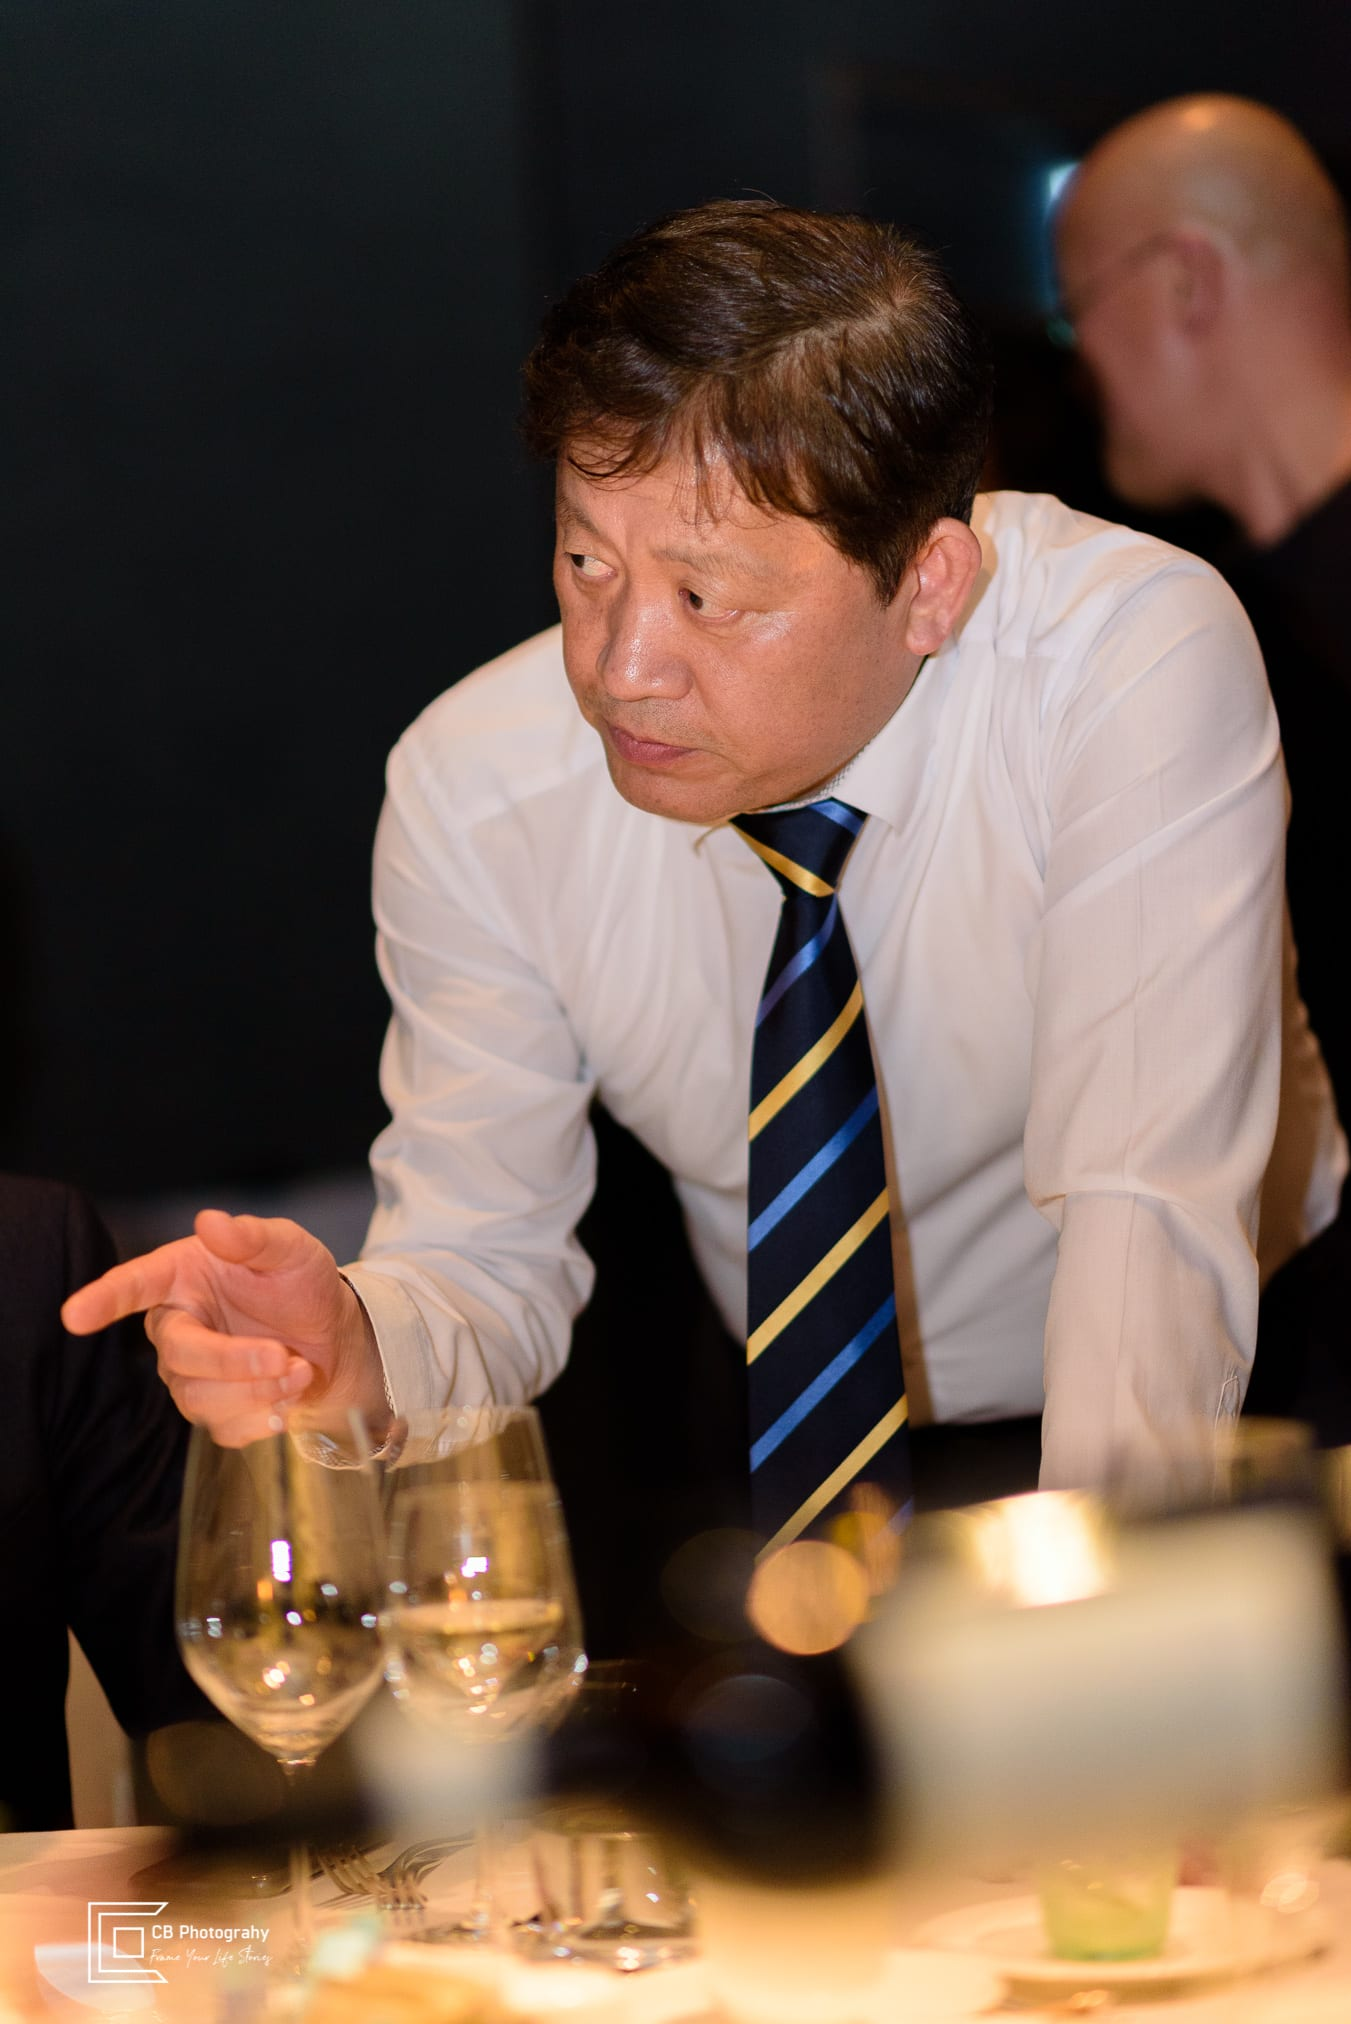 Corporate event photography for Swedish Chamber of Commerce by Cristian Bucur photographer in Tokyo